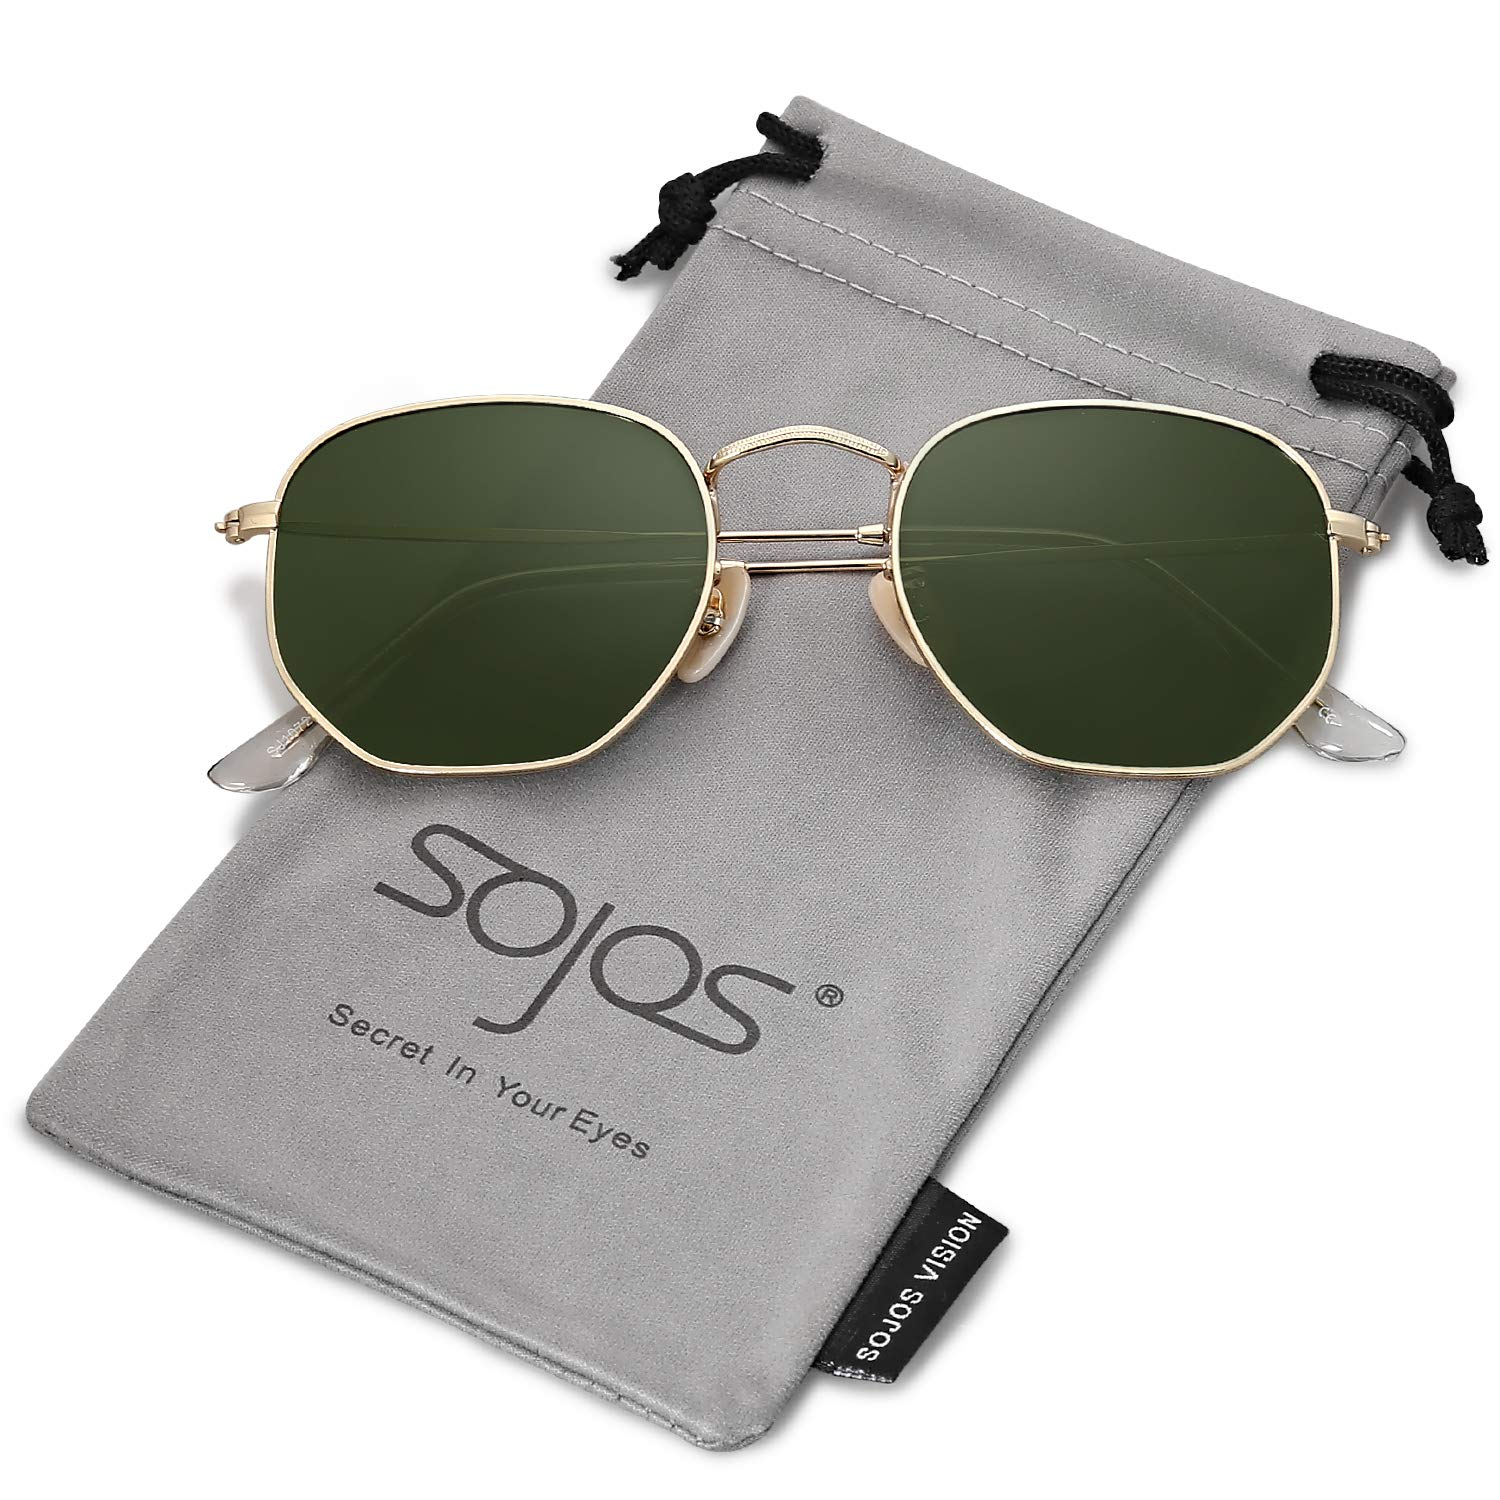 SOJOS Small Square Polarized Sunglasses for Men and Women Polygon Mirrored Lens SJ1072 with Gold Frame/G15 Lens